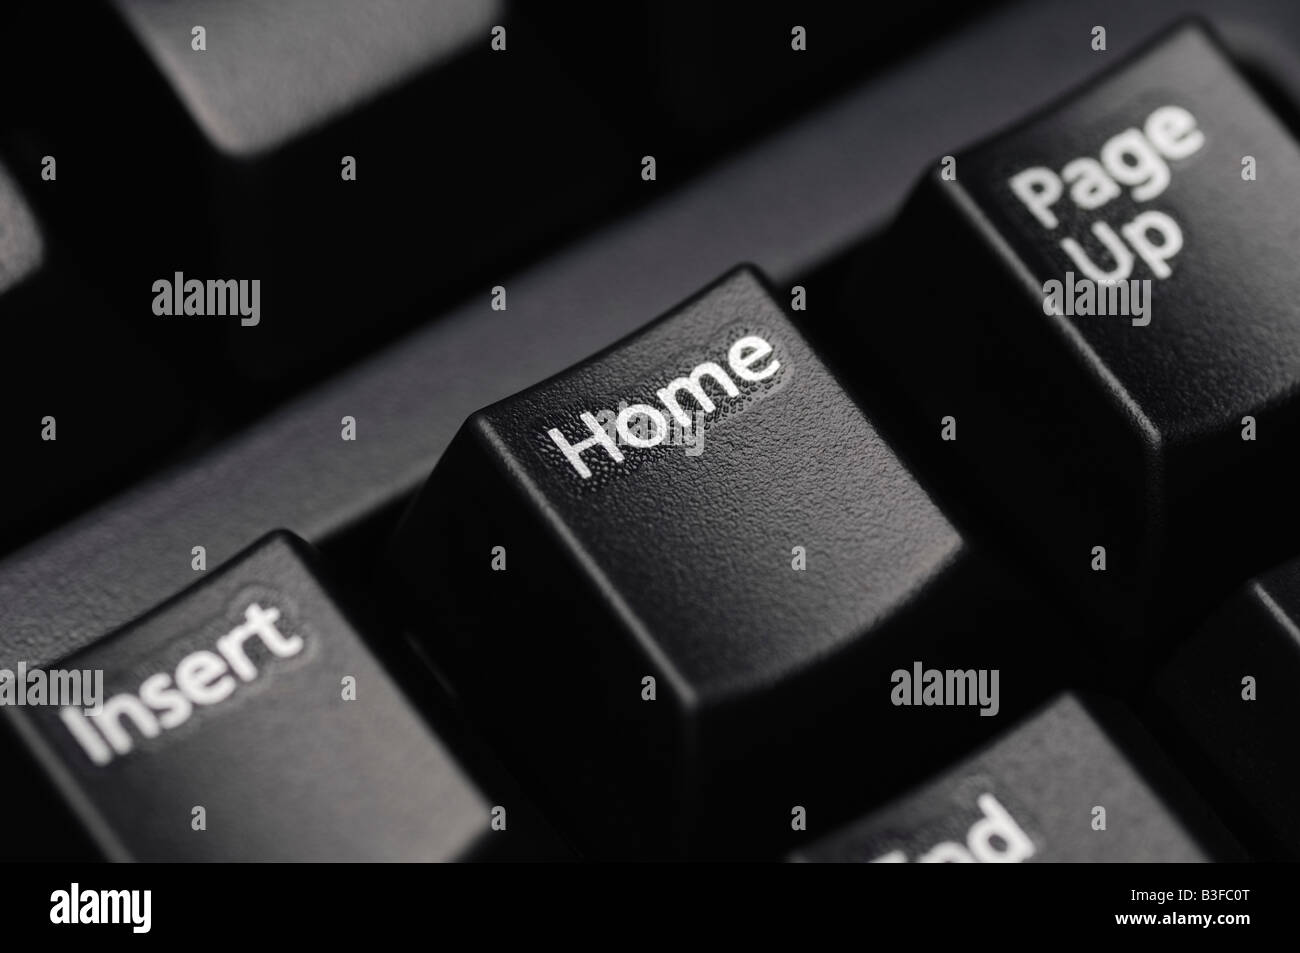 Computer Keyboard Close Up Showing the Home Key - Stock Image